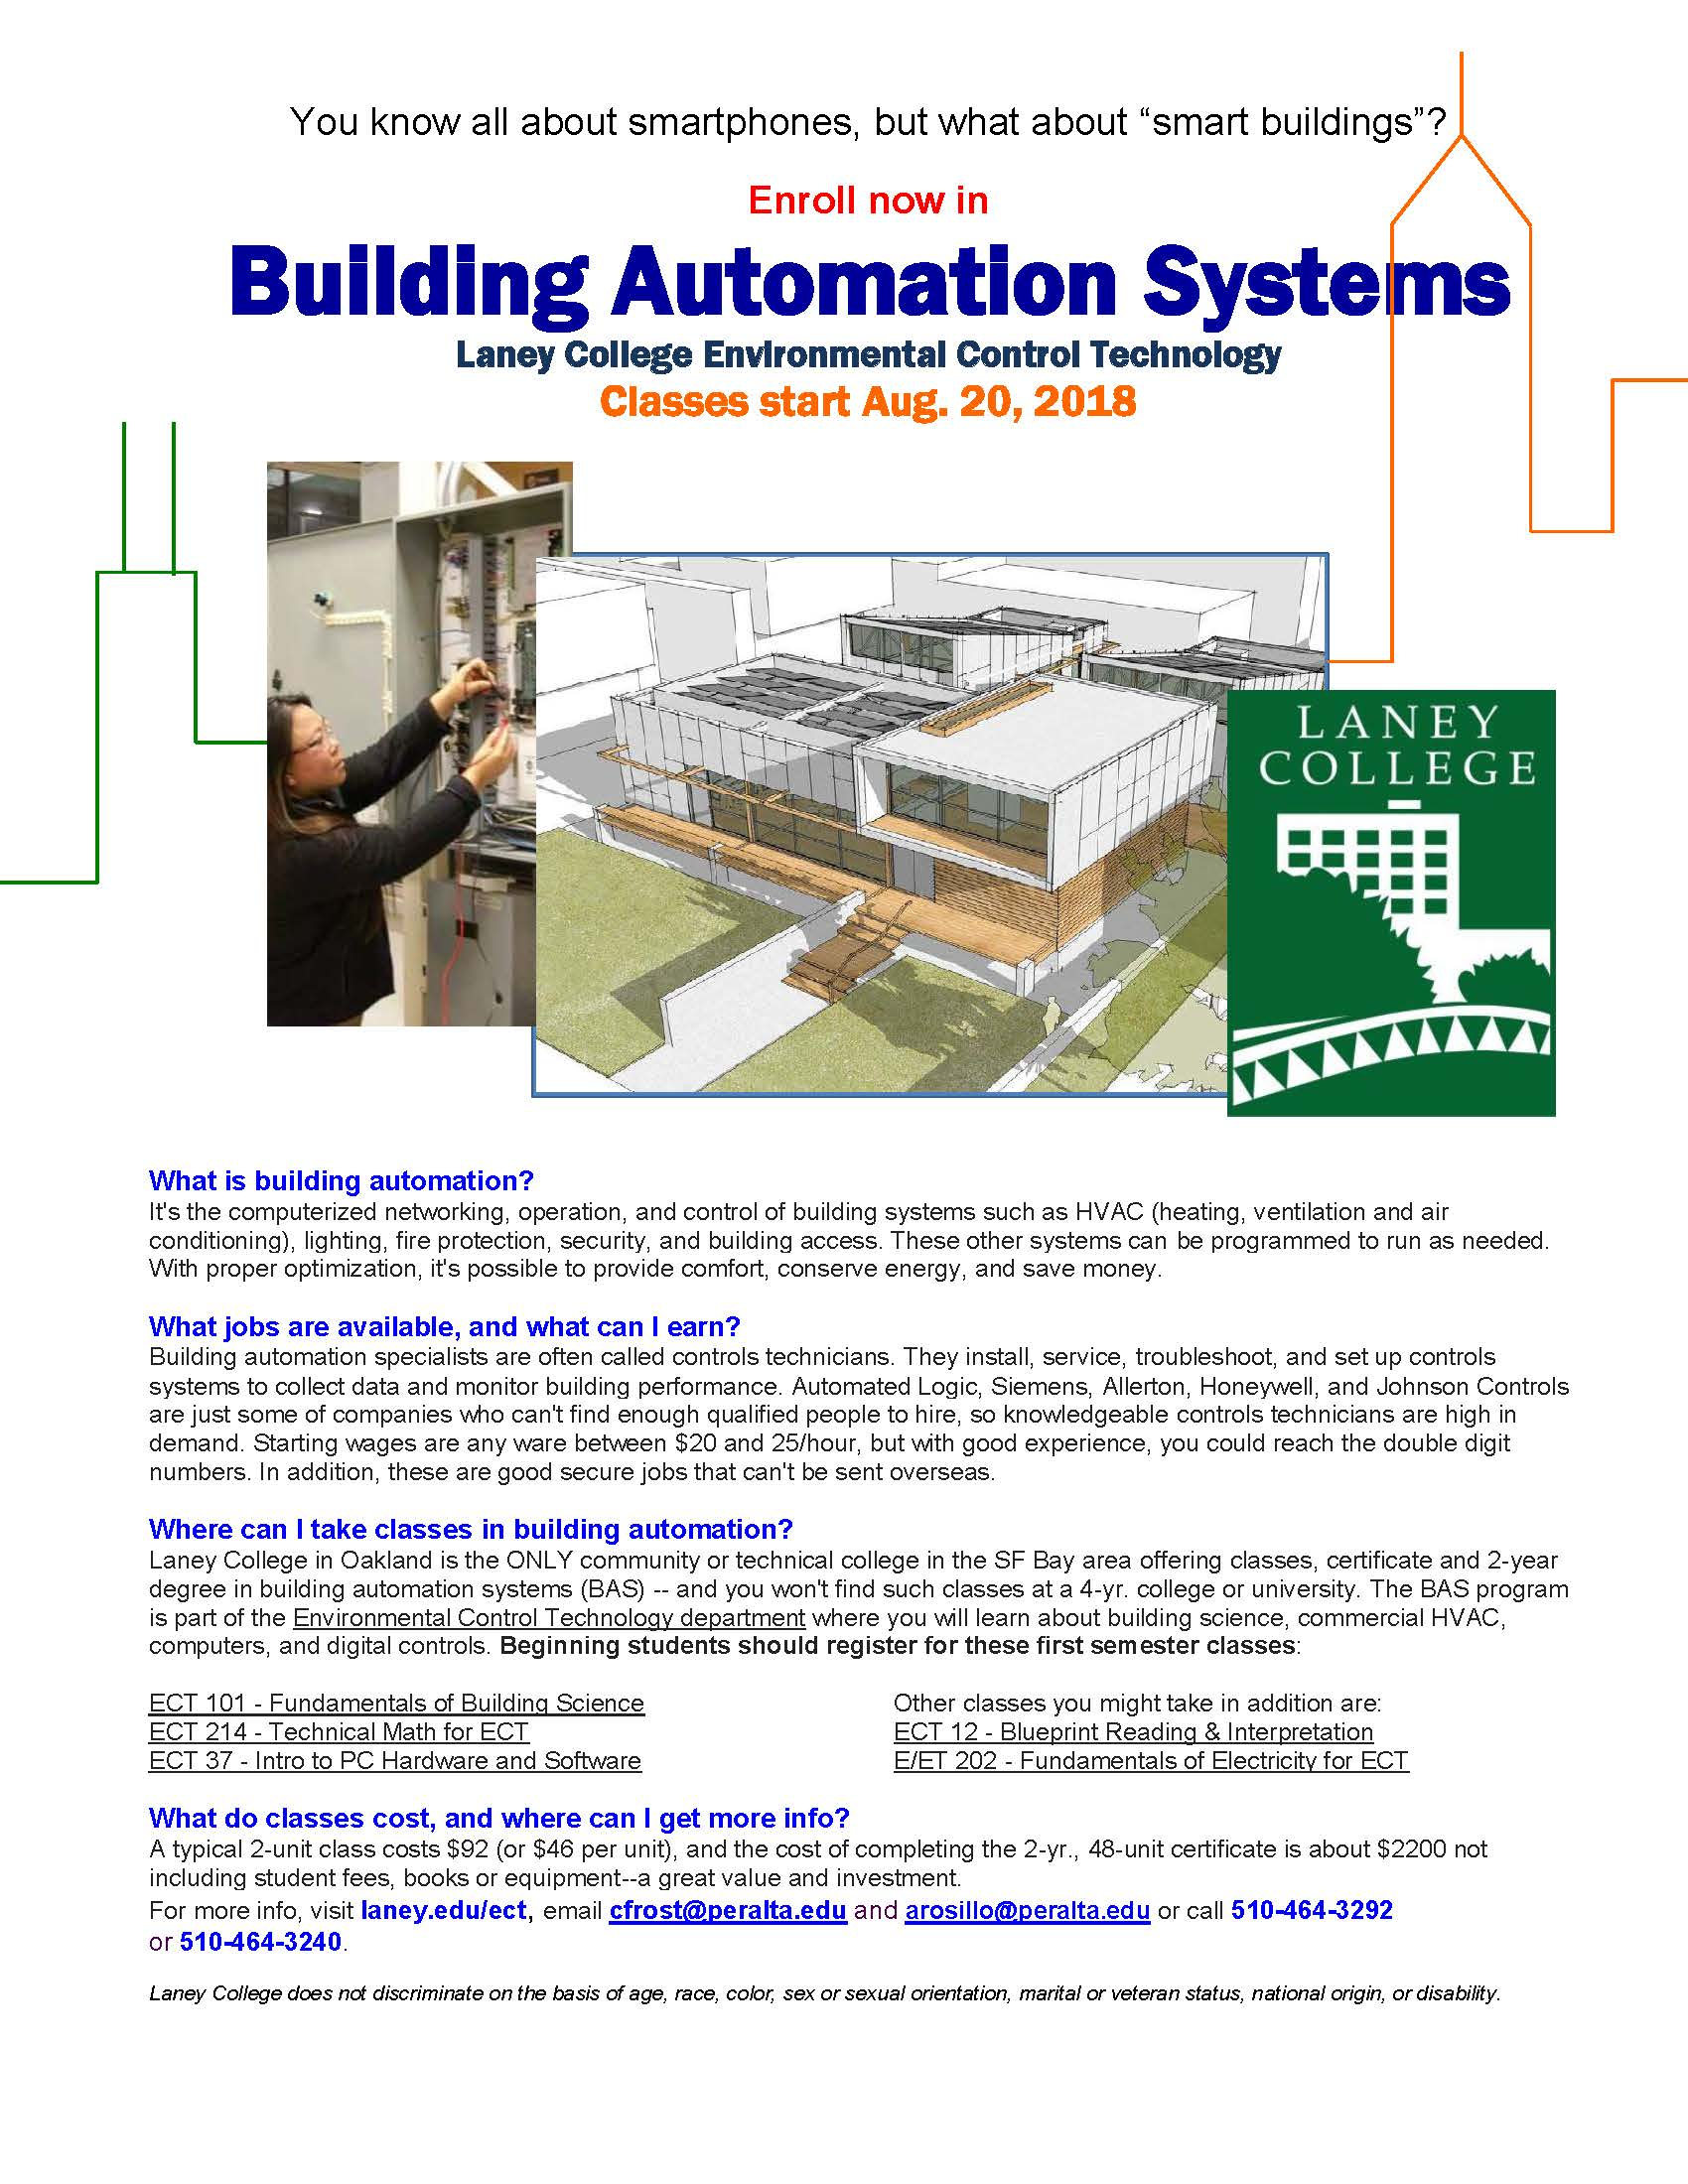 Ect Courses Environmental Control Technology Hvacr Hvac Drawing Symbols And Abbreviations Building Automation Fall 2018 Flyer